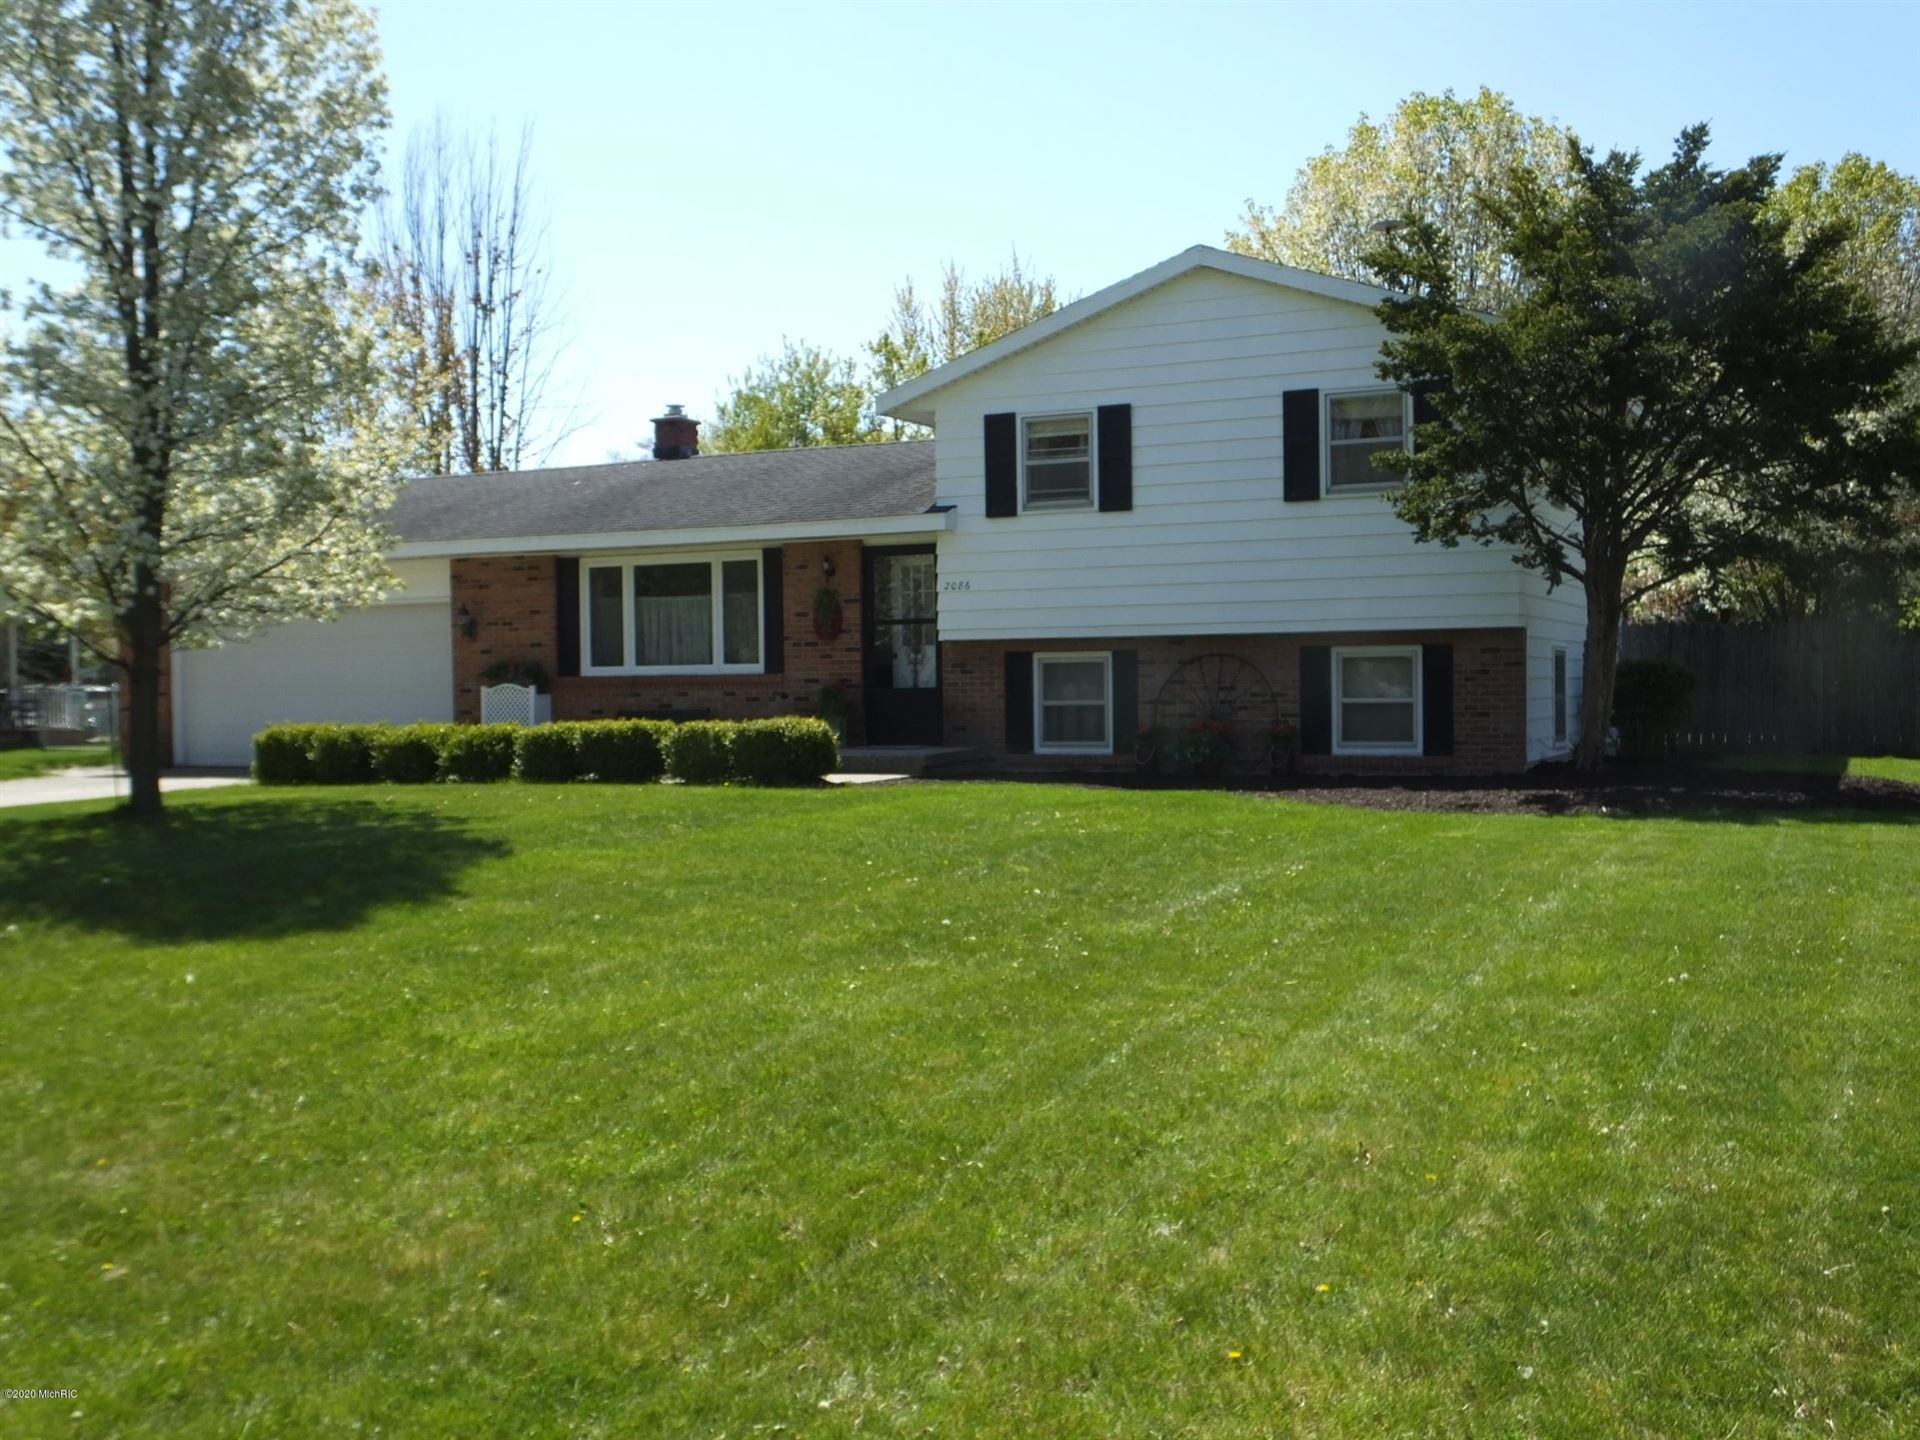 2086 Mulberry Lane, Jenison, MI 49428 - #: 20018961